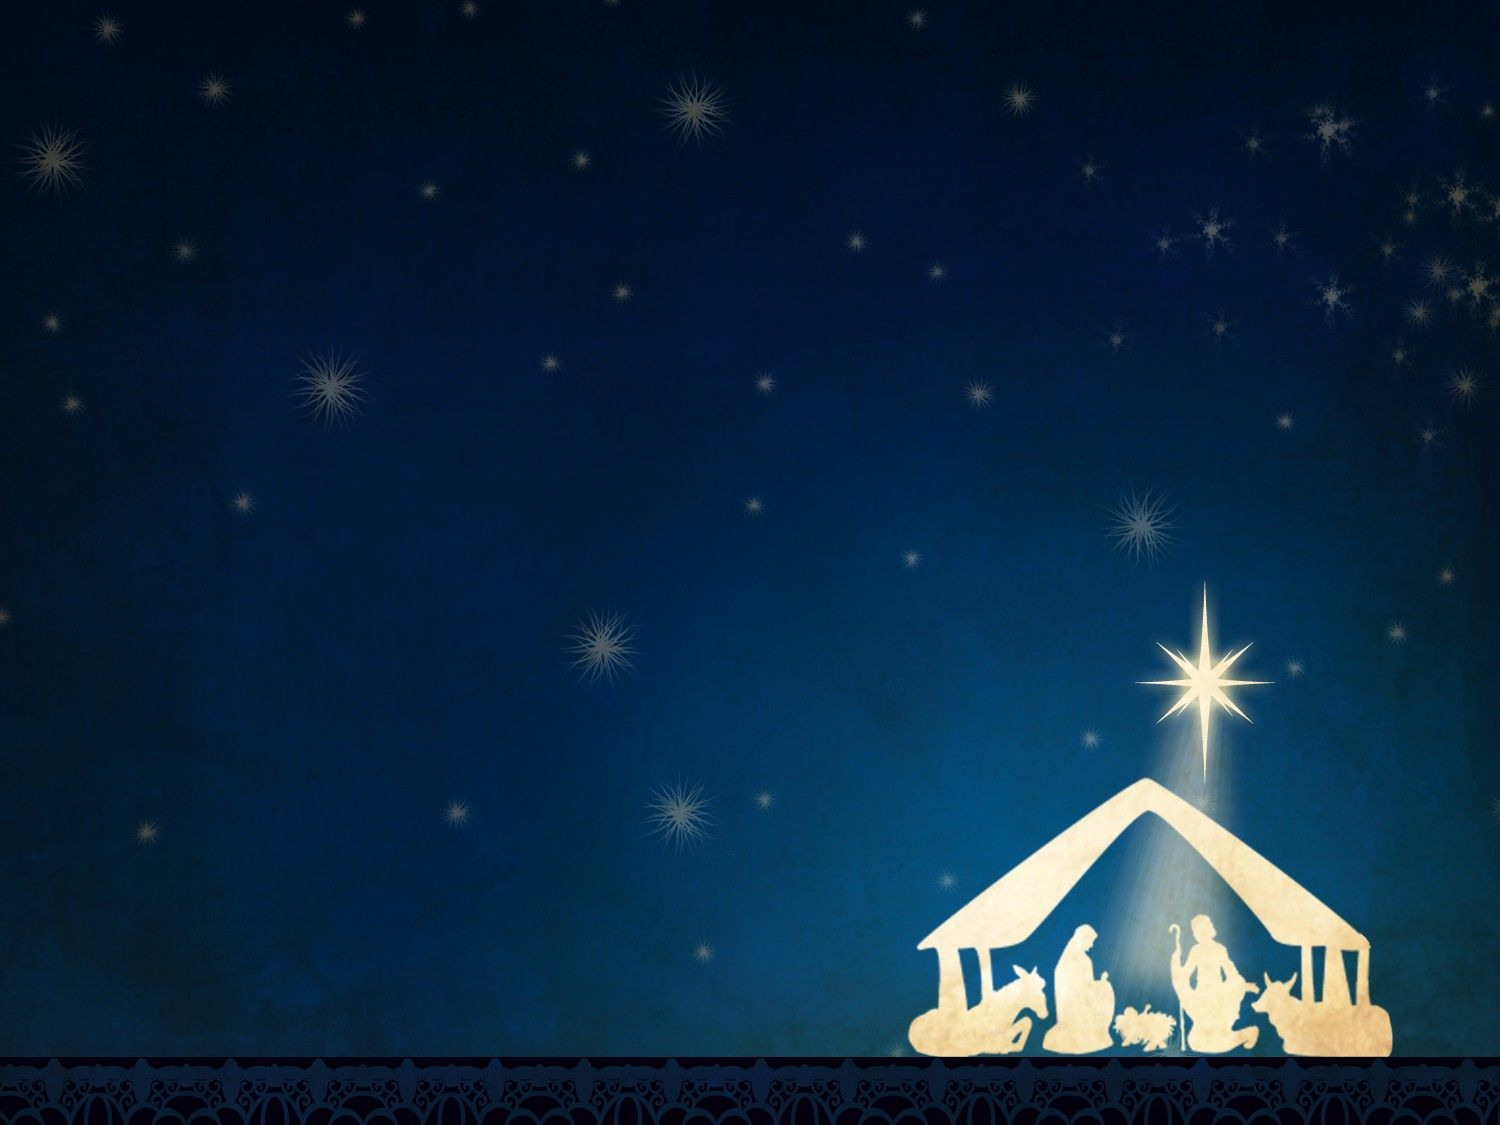 Nativity clipart background. Free cliparts download clip